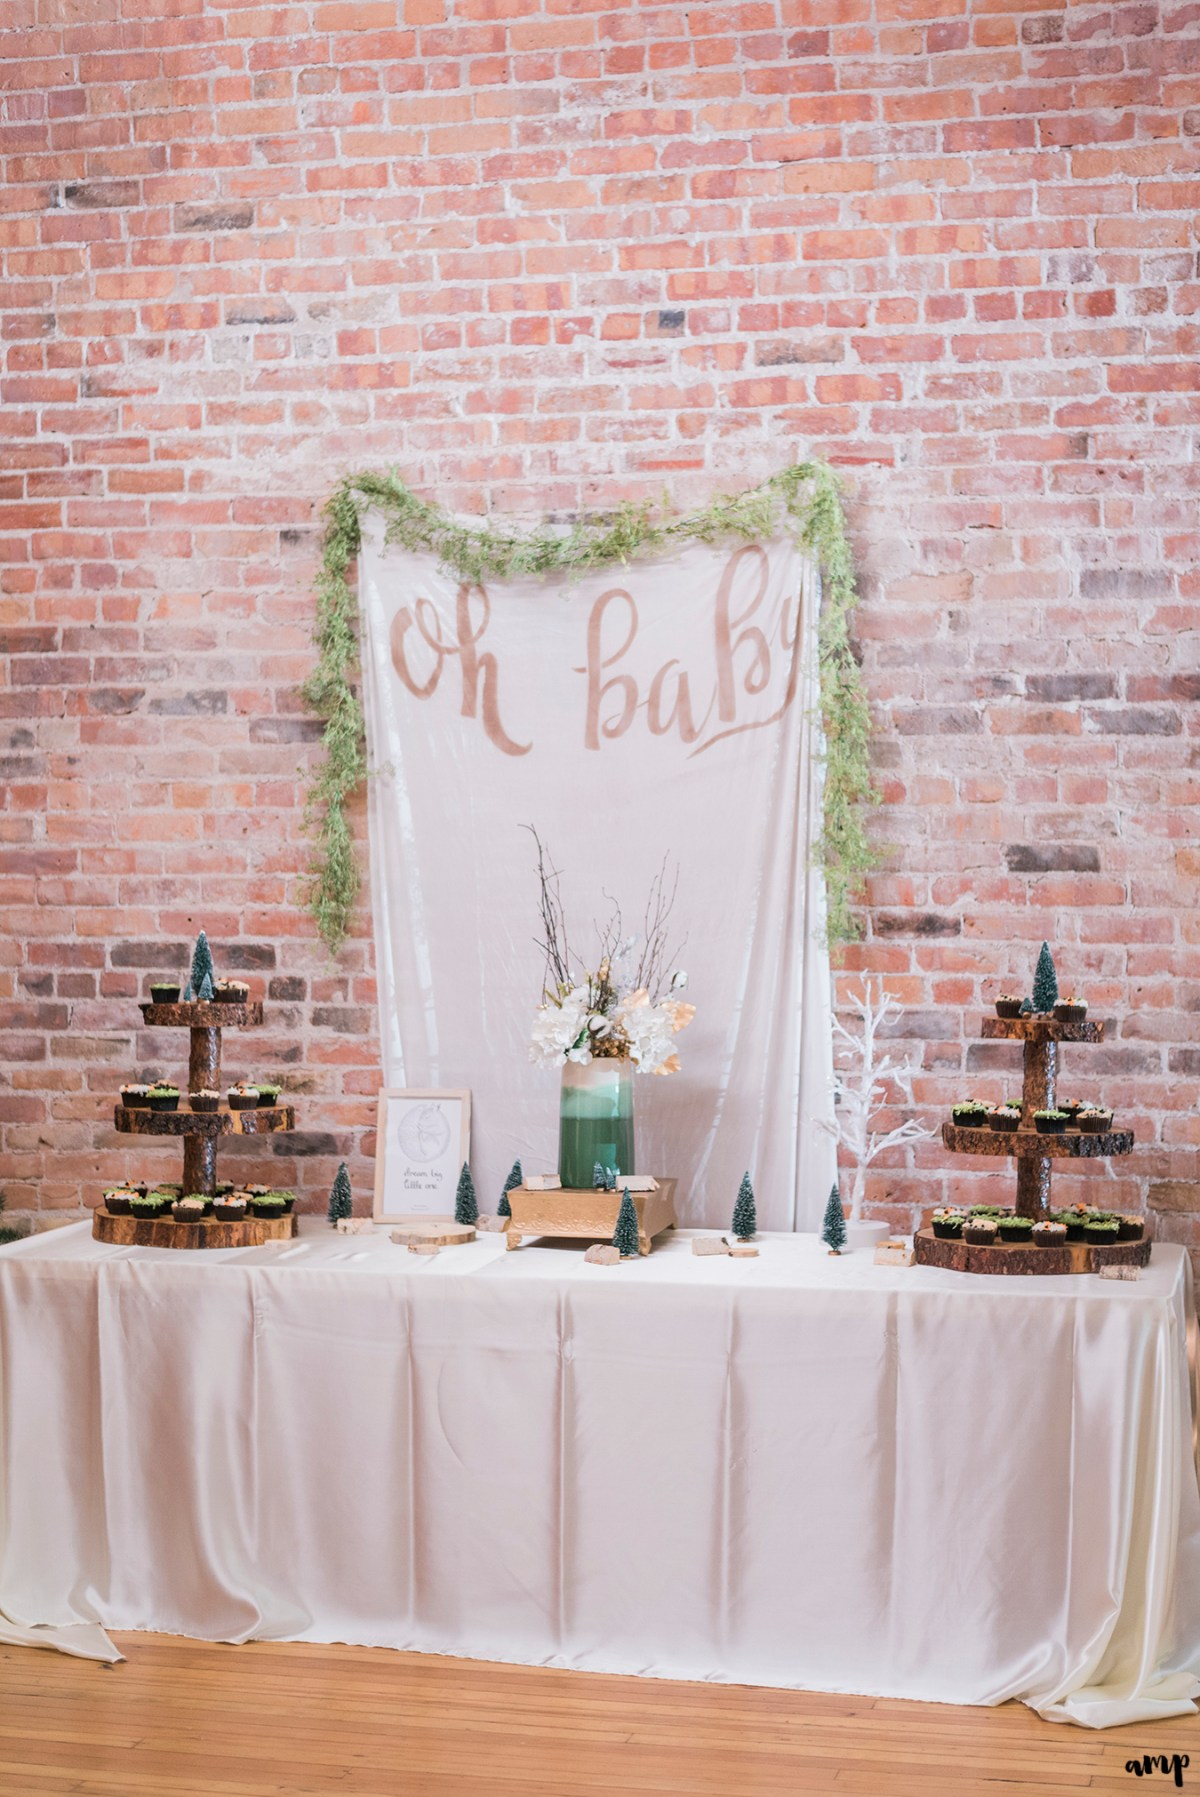 """Oh baby"" banner and dessert table"